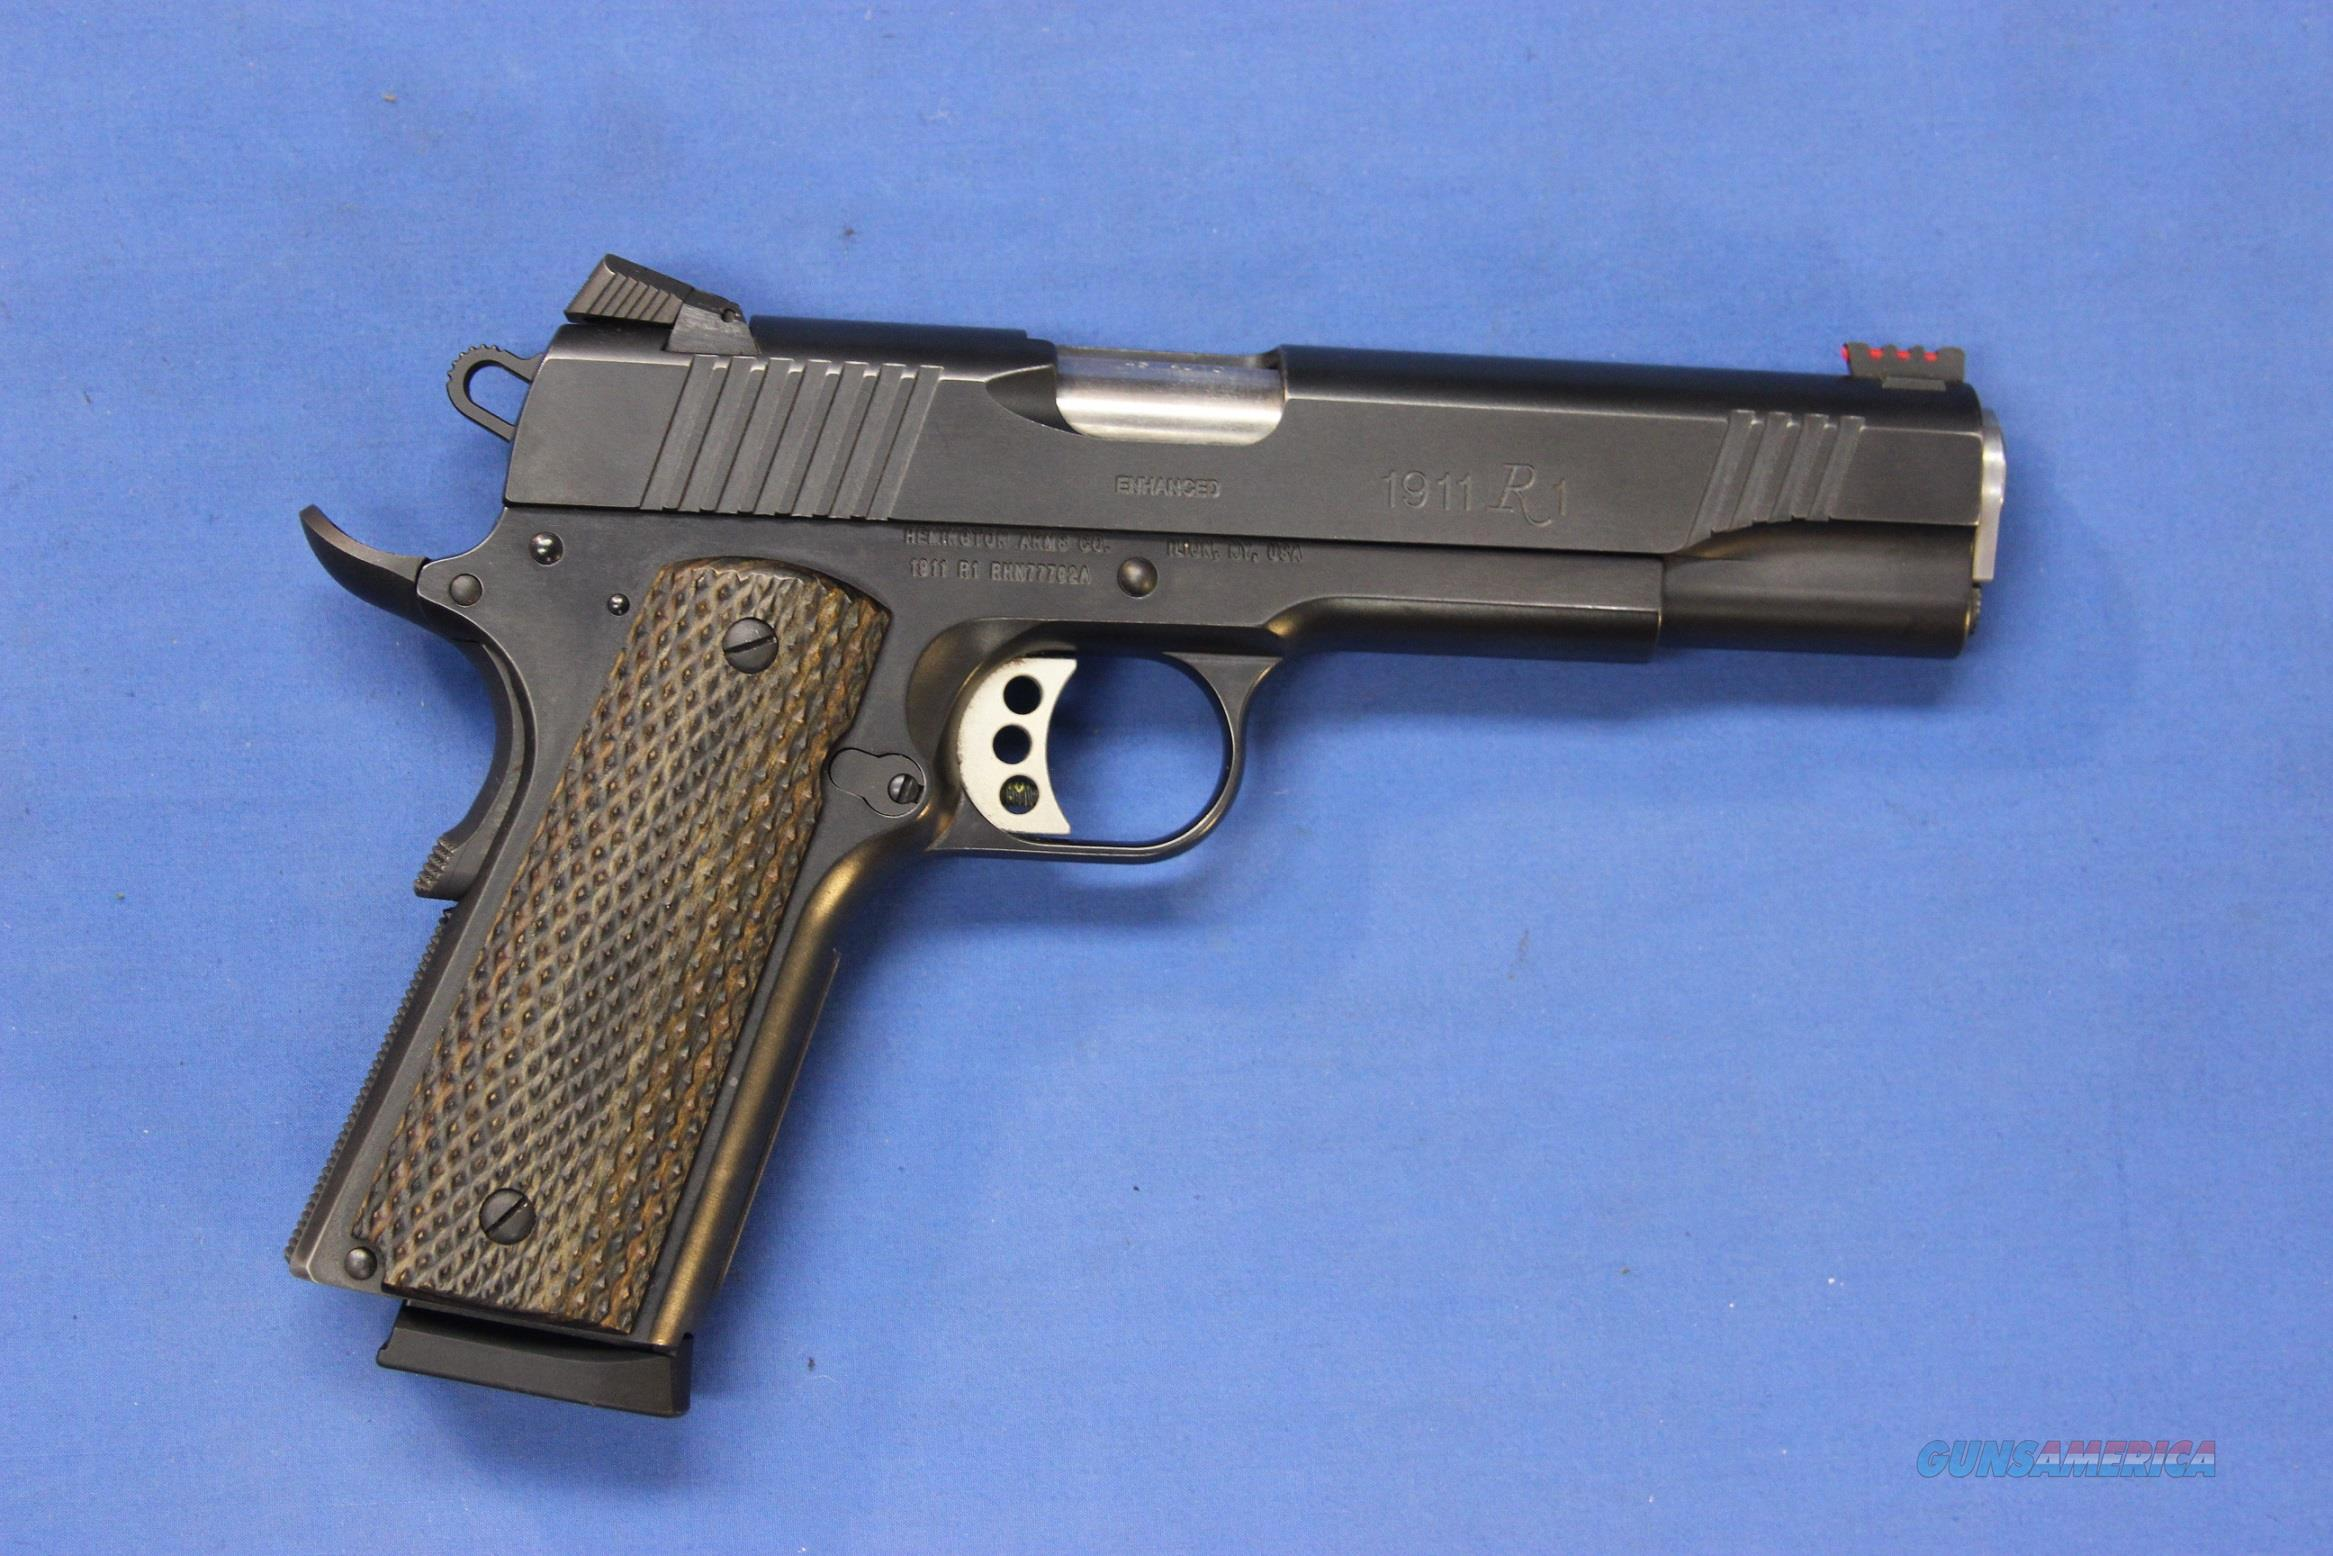 REMINGTON 1911 R1 .45 ACP w/FACTORY BOX & 4 MAGS  Guns > Pistols > Remington Pistols - Modern > 1911